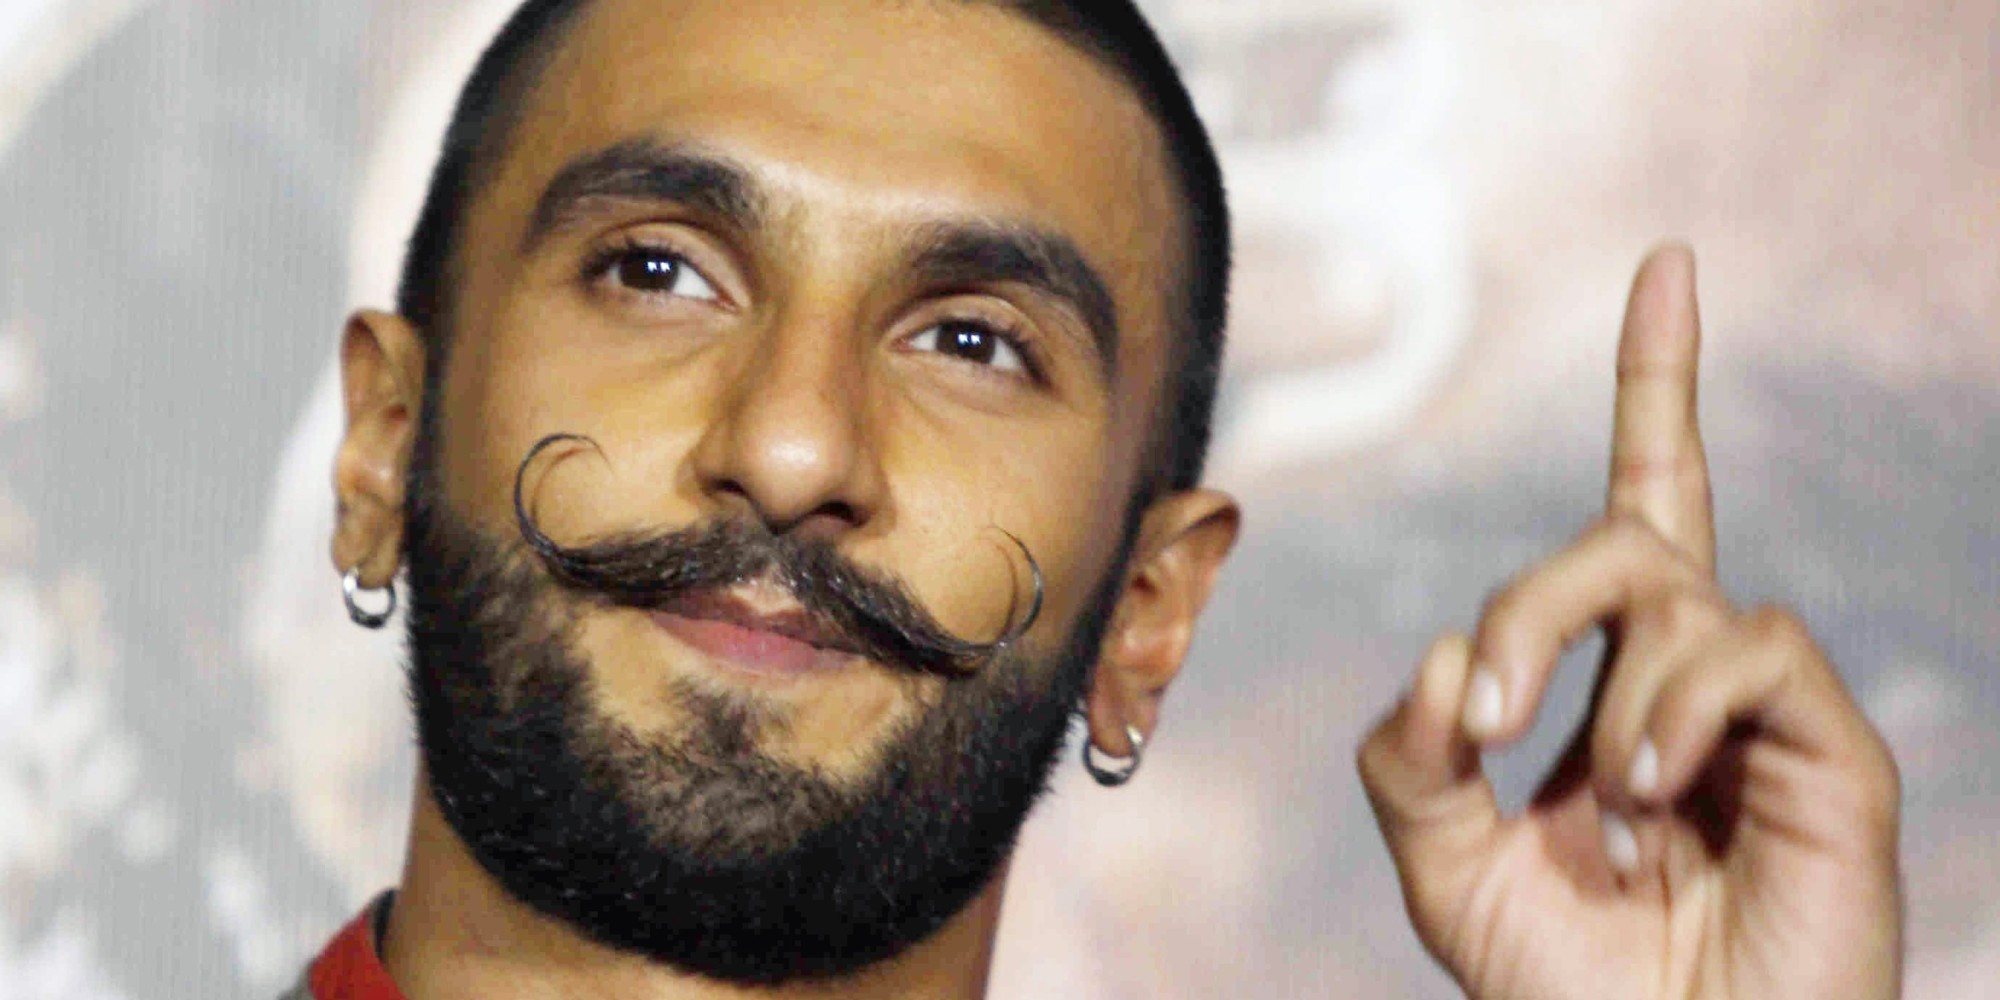 ranveer singh filmranveer singh film, ranveer singh биография, ranveer singh 2017, ranveer singh movies, ranveer singh biography, ranveer singh twitter official, ranveer singh filmleri, ranveer singh performance 2016, ranveer singh wikipedia, ranveer singh wiki, ranveer singh vse filmi, ranveer singh кинопоиск, ranveer singh deepika padukone film, ranveer singh dance video download, ranveer singh family, ranveer singh mp3, ranveer singh facebook, ranveer singh father, ranveer singh and deepika, ranveer singh age